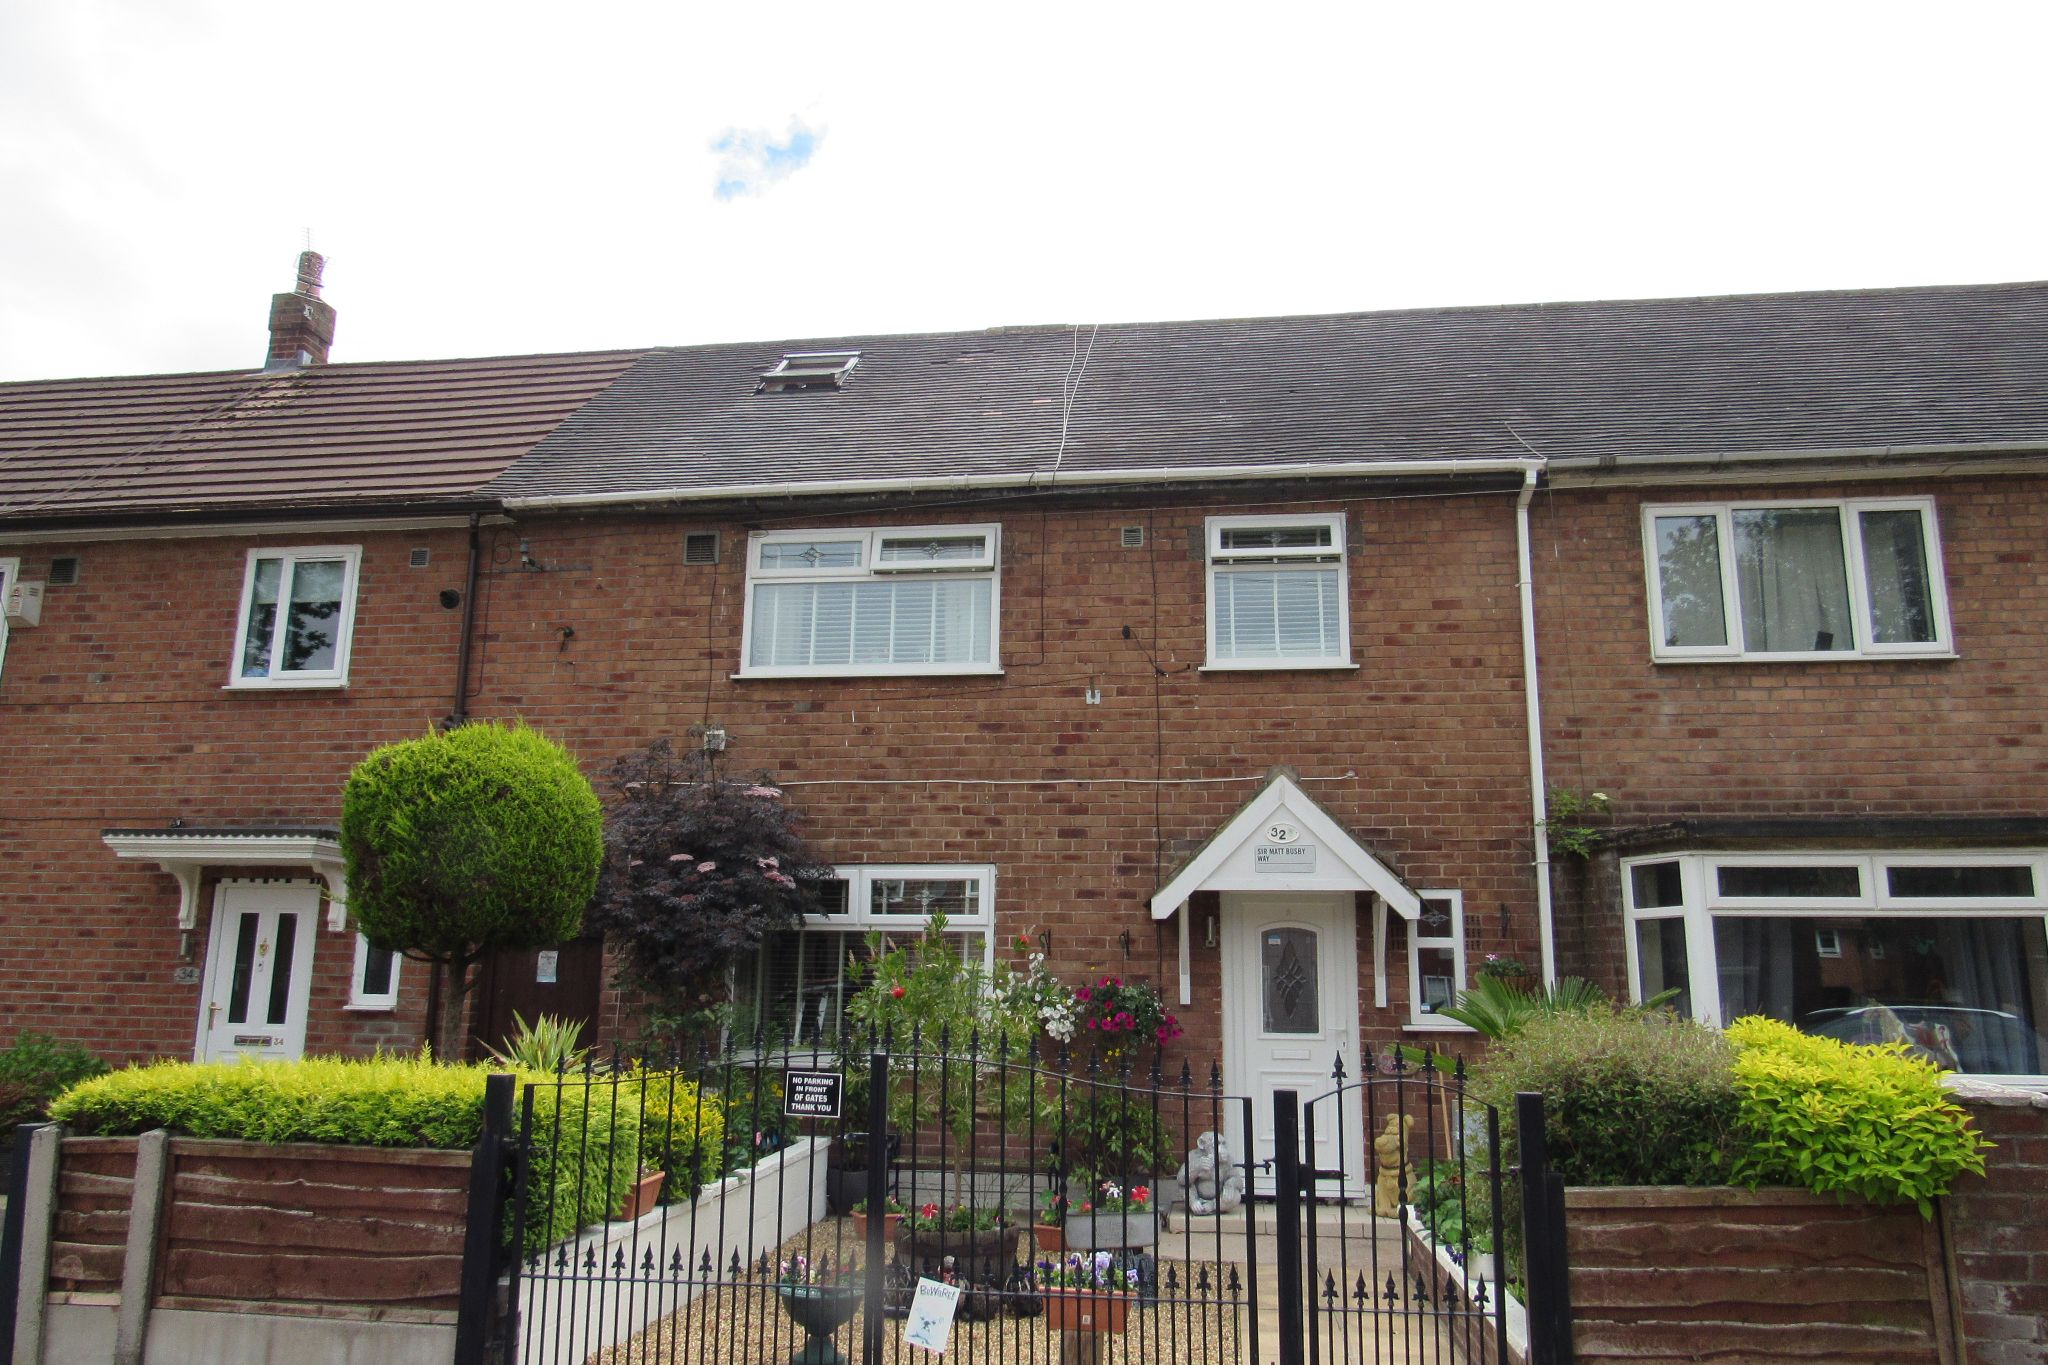 3 bedroom mid terraced house SSTC in Manchester - Photograph 28.